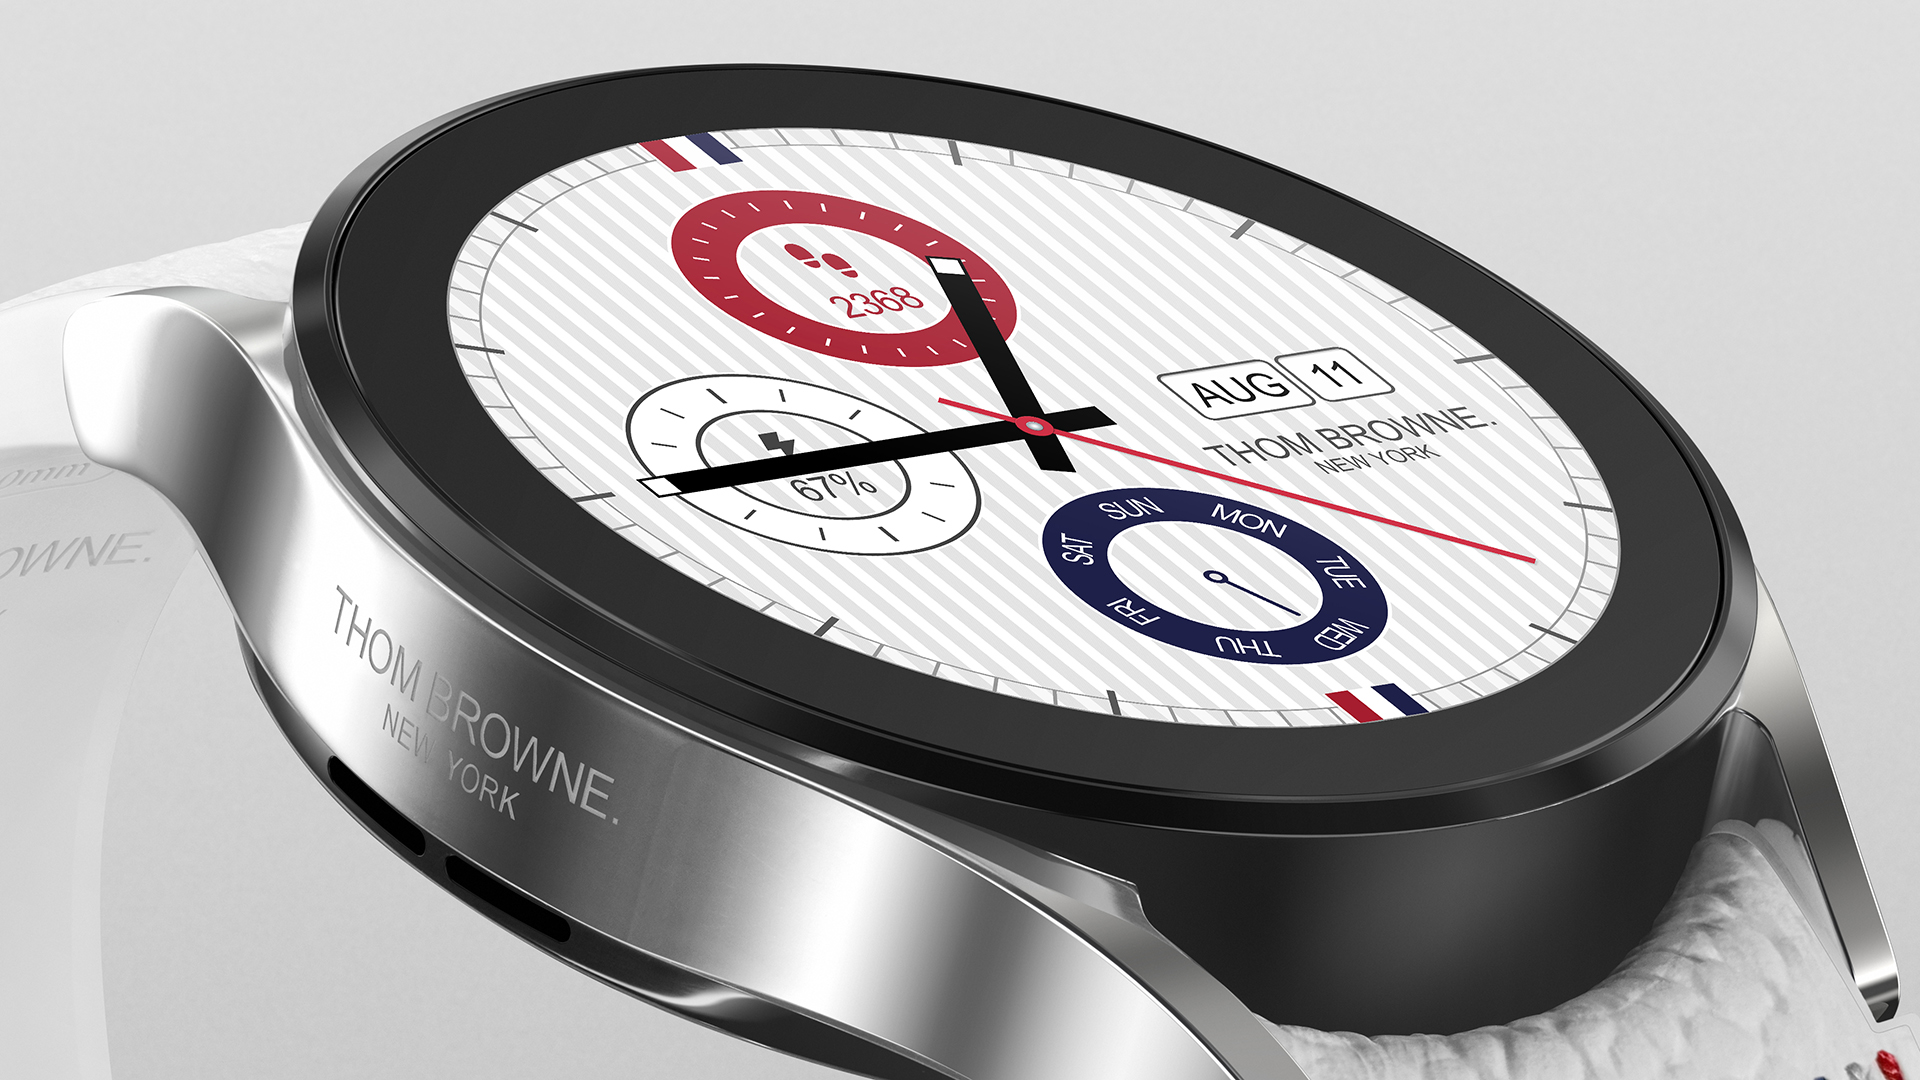 Samsung's Thom Brown Galaxy Watch 4 Classic goes on sale on September 29th